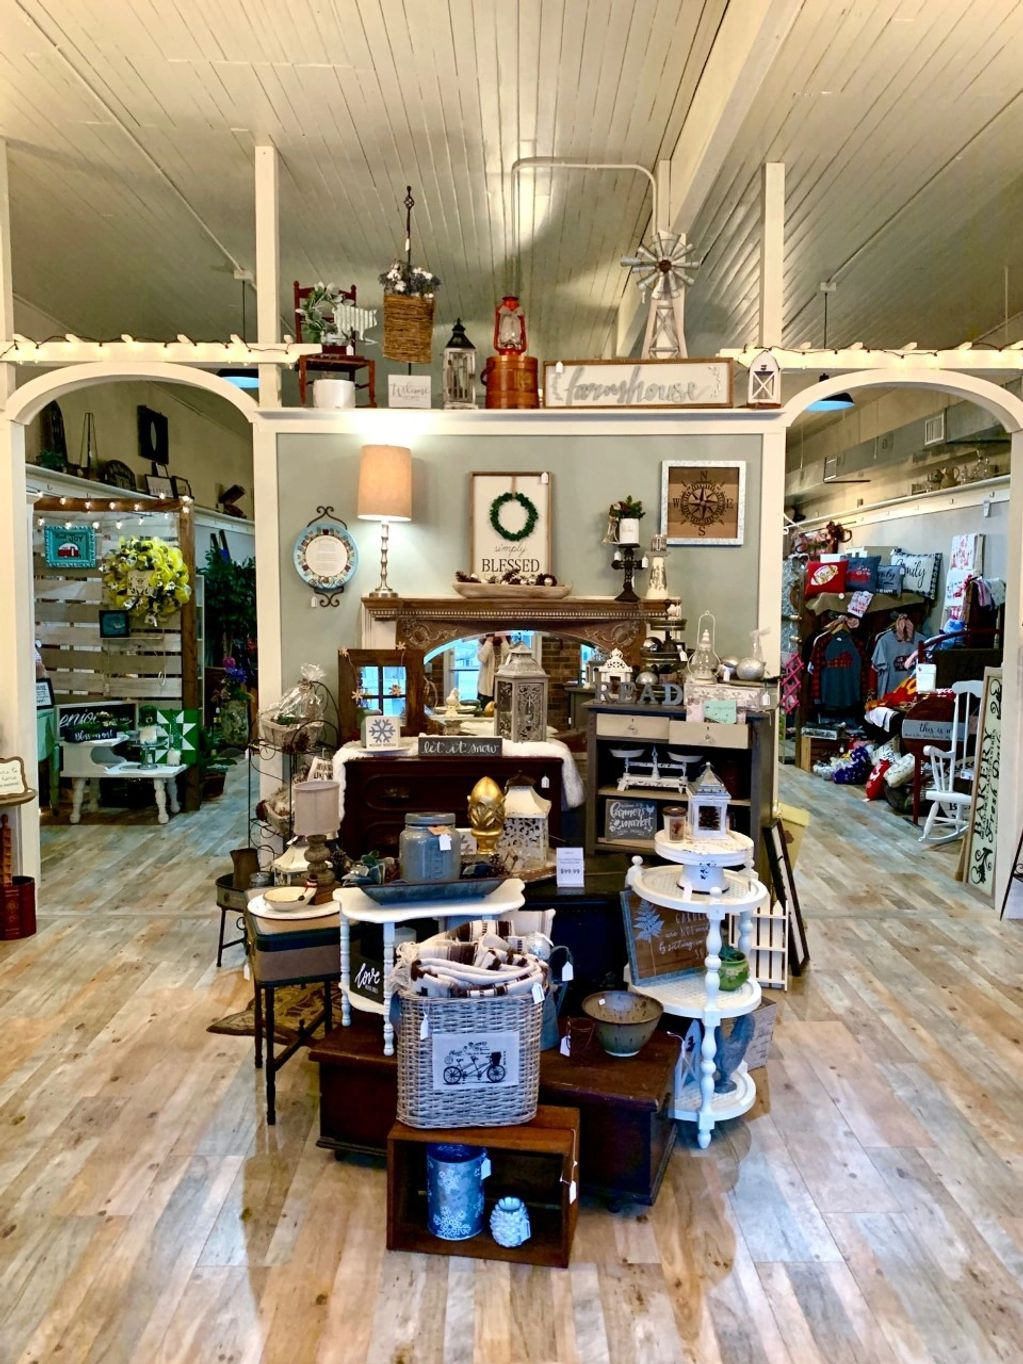 Come in and experience the unique and ever-changing merchandise displays at Painted Barrels.